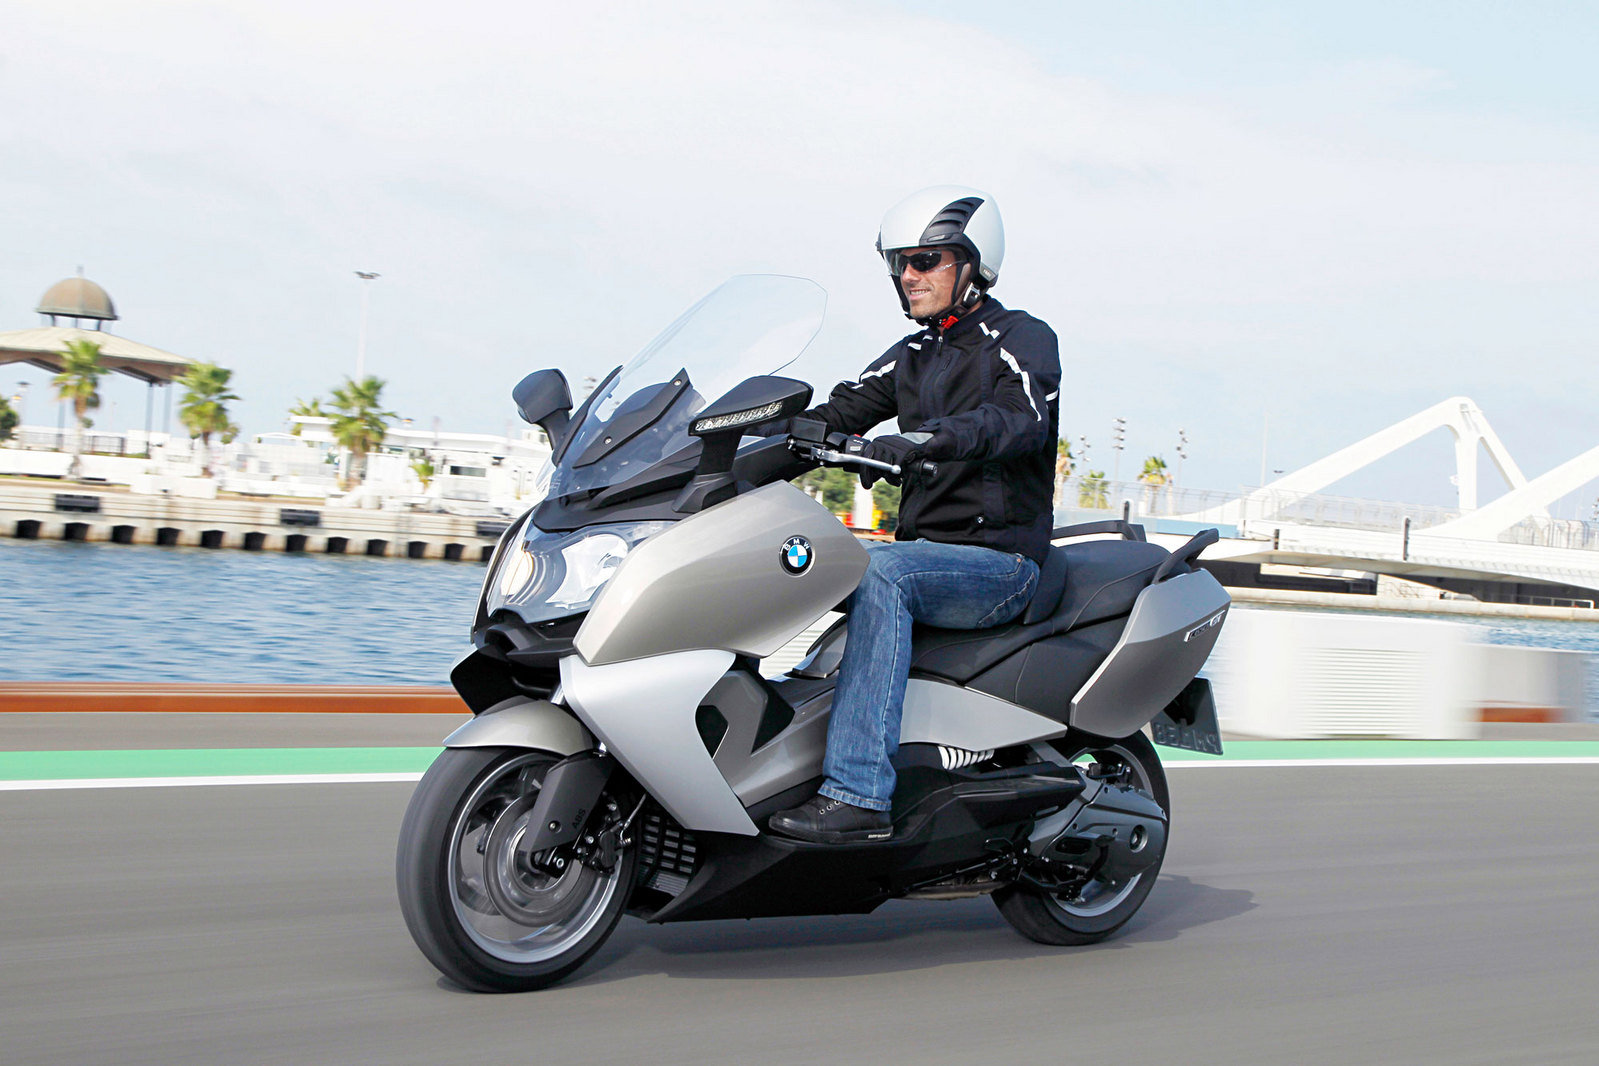 2013 bmw c 650 gt picture 486680 motorcycle review. Black Bedroom Furniture Sets. Home Design Ideas